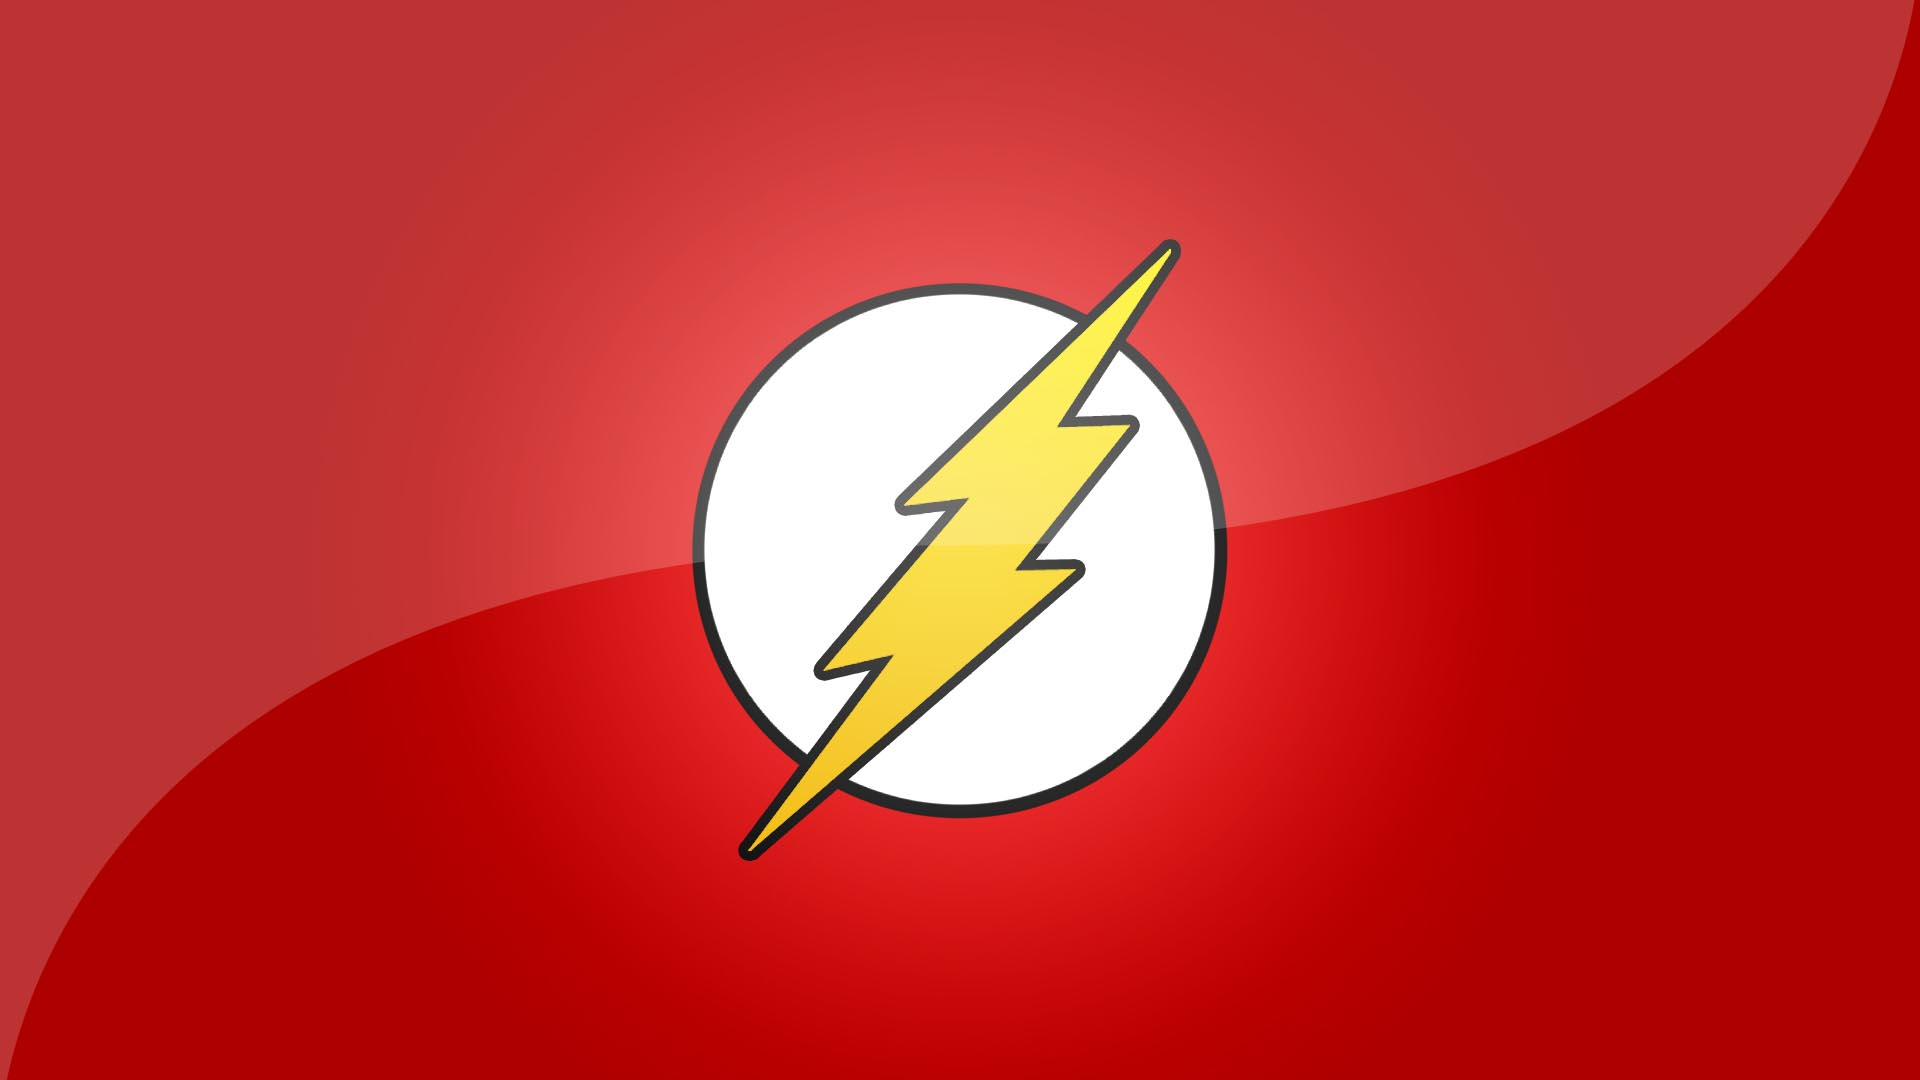 Flash Logo Wallpapers HD | PixelsTalk Net